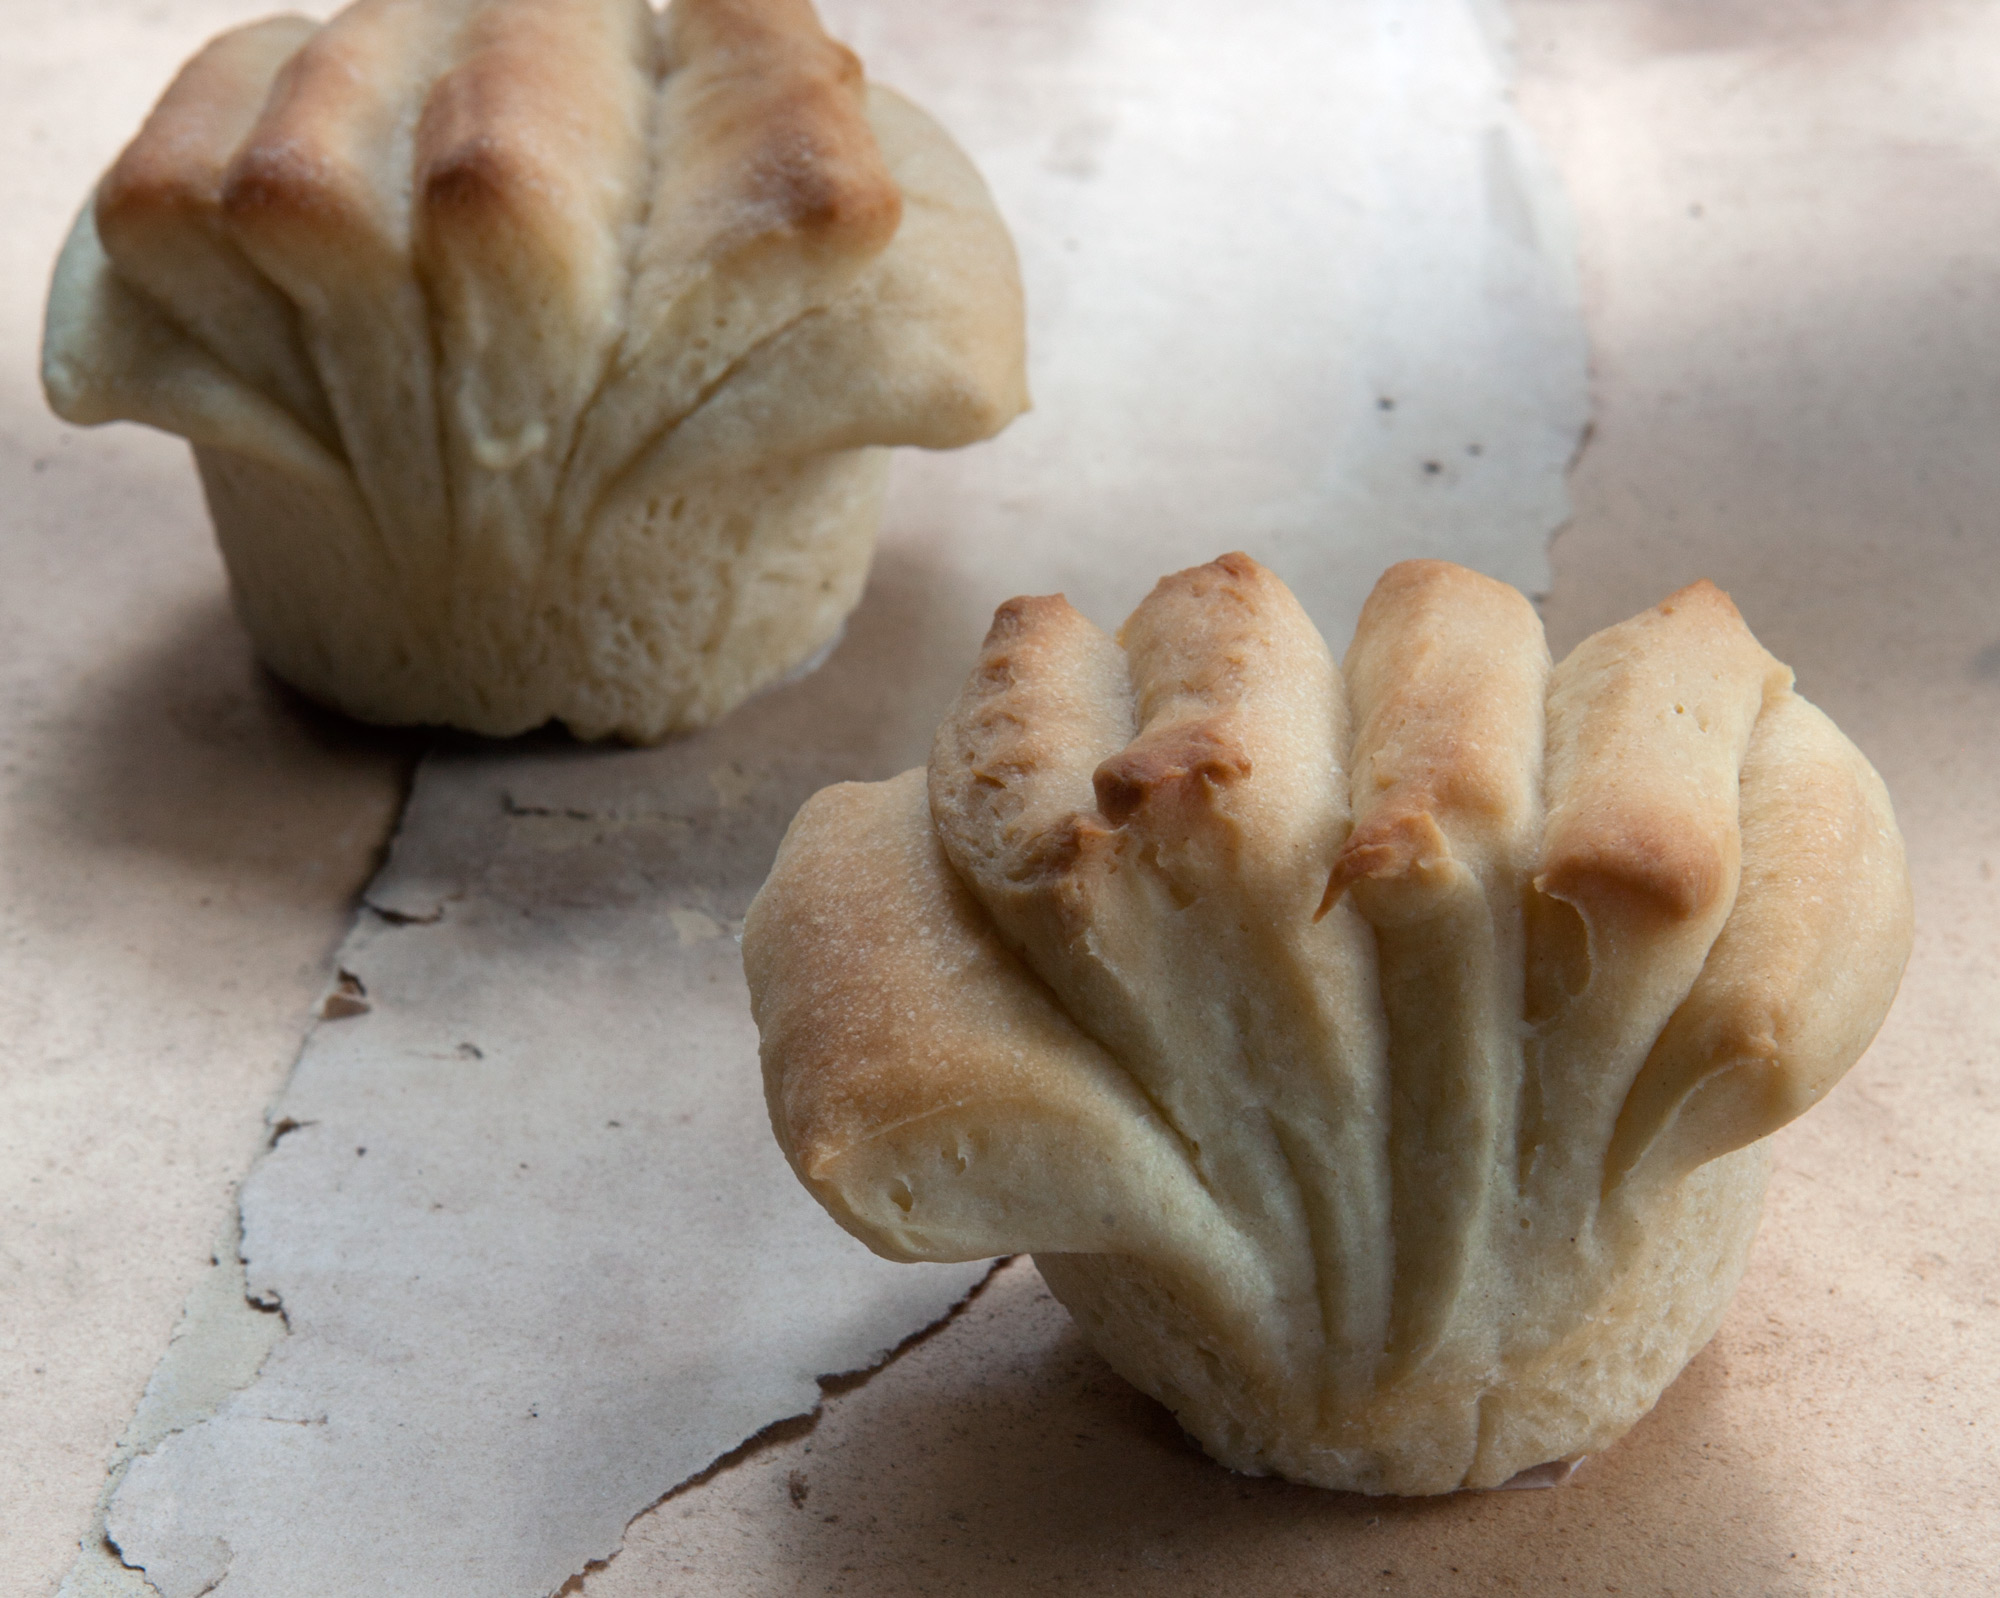 Buttermilk Fantails: Ventagli al latticello